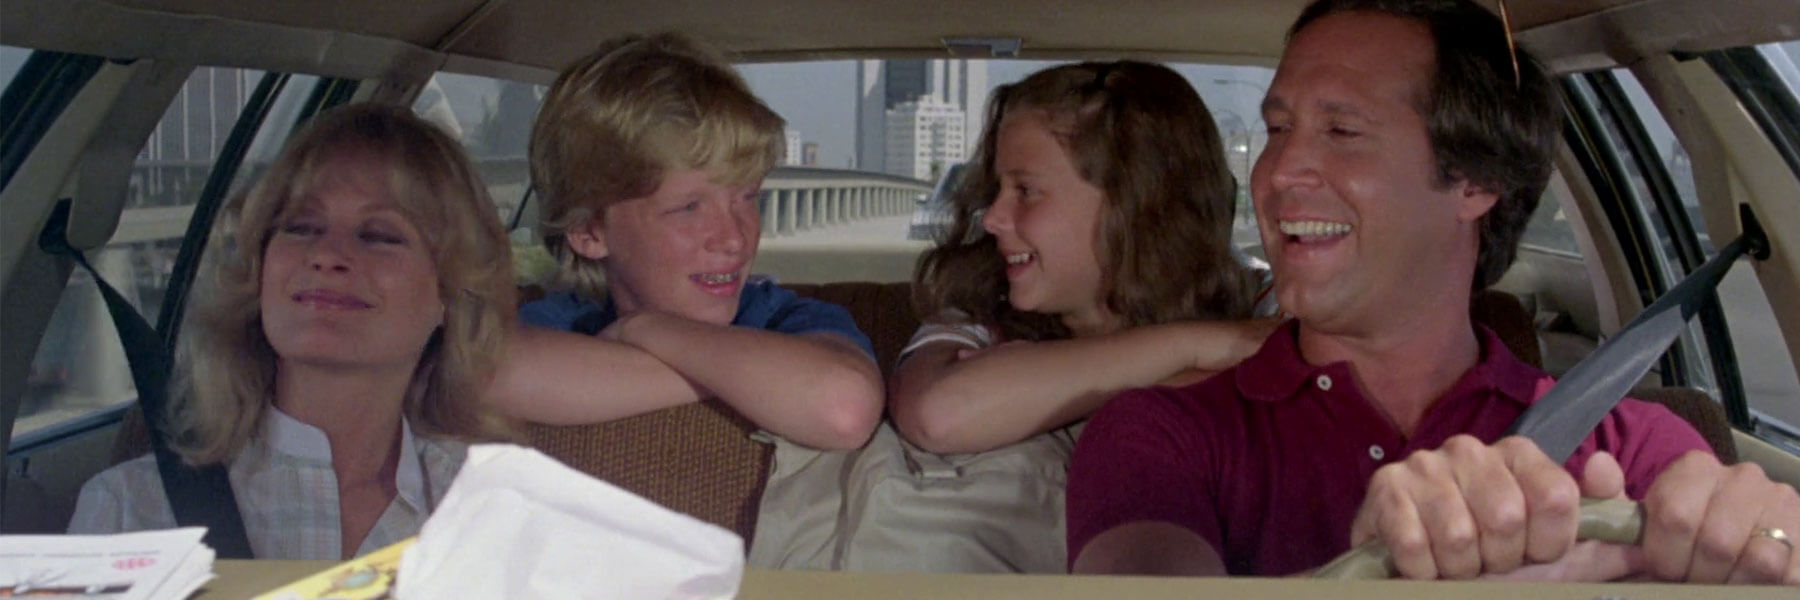 5 Funny 'Road-Trip' Movies to Watch While Traveling